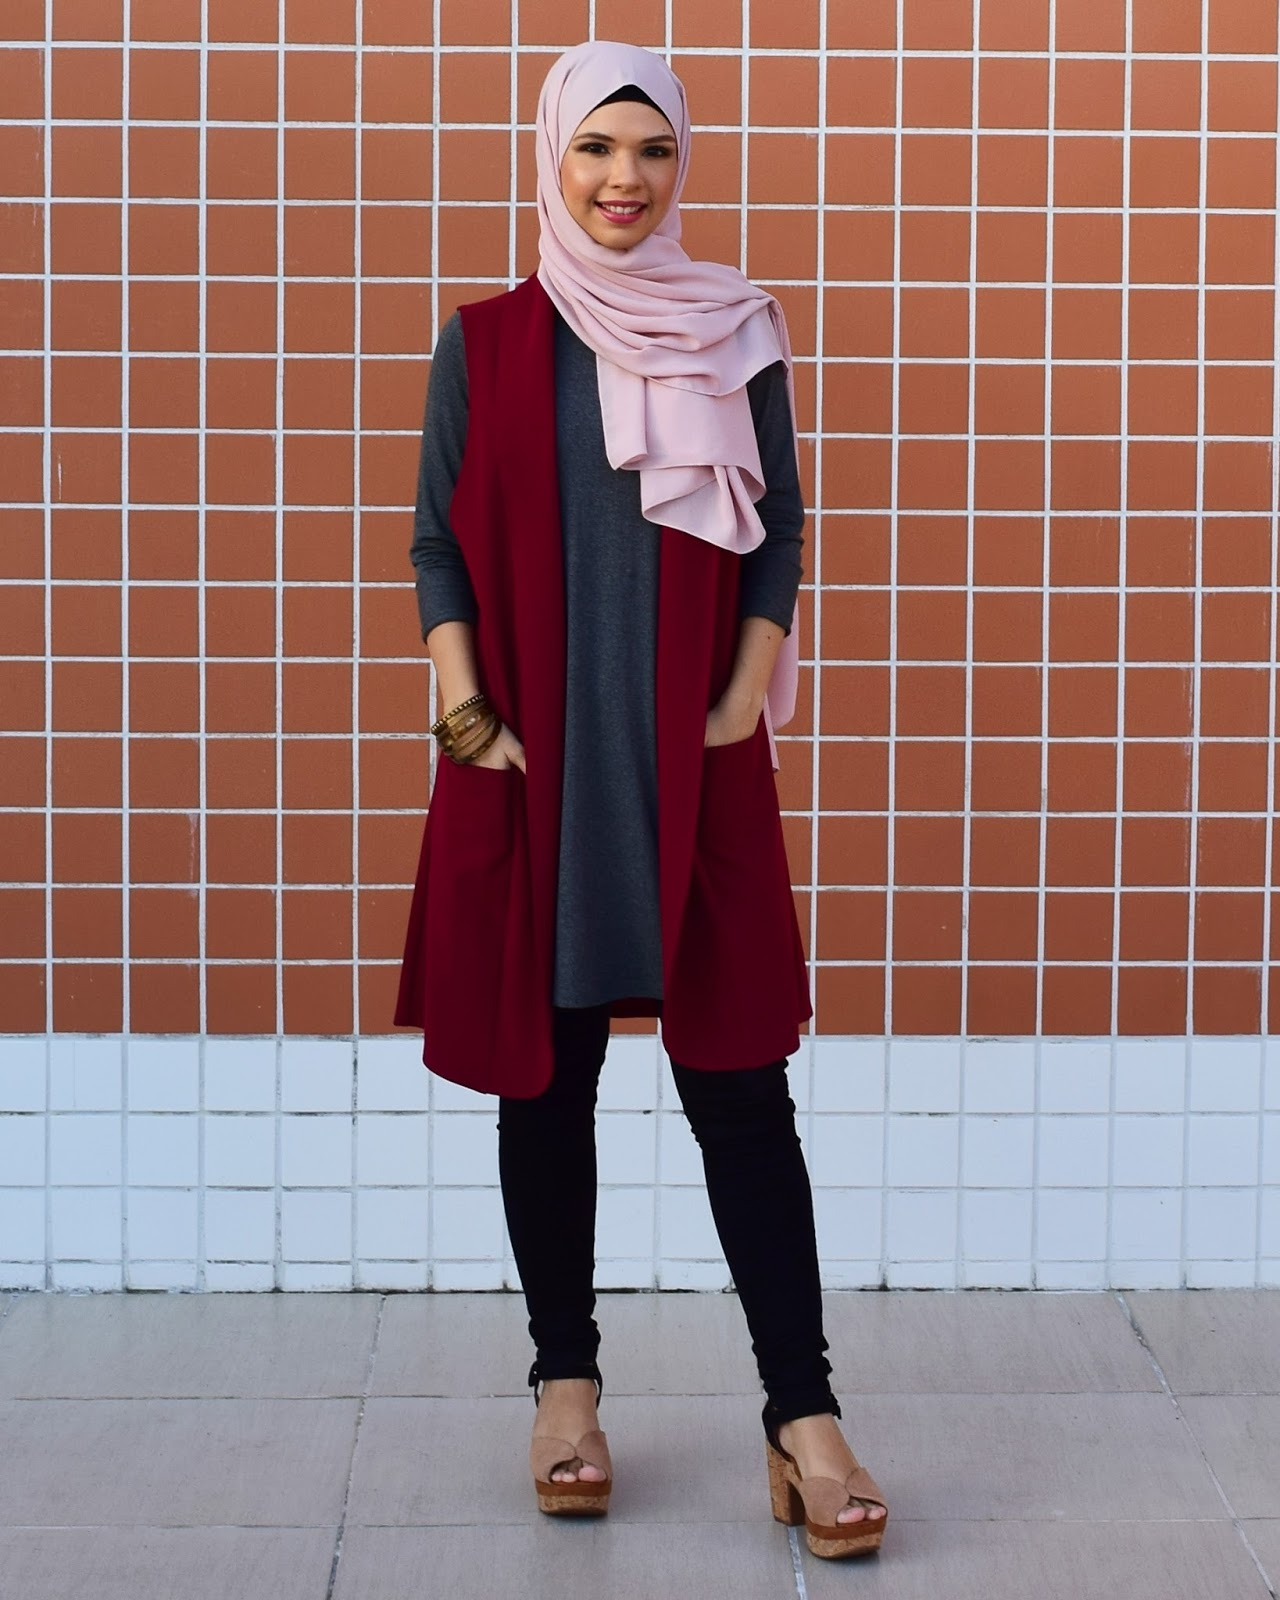 photoshoot, lookbook, modest wear, modest fashion, hijab fashion, hijab style, ootd, fashion blogger, modest fashion blogger, eid